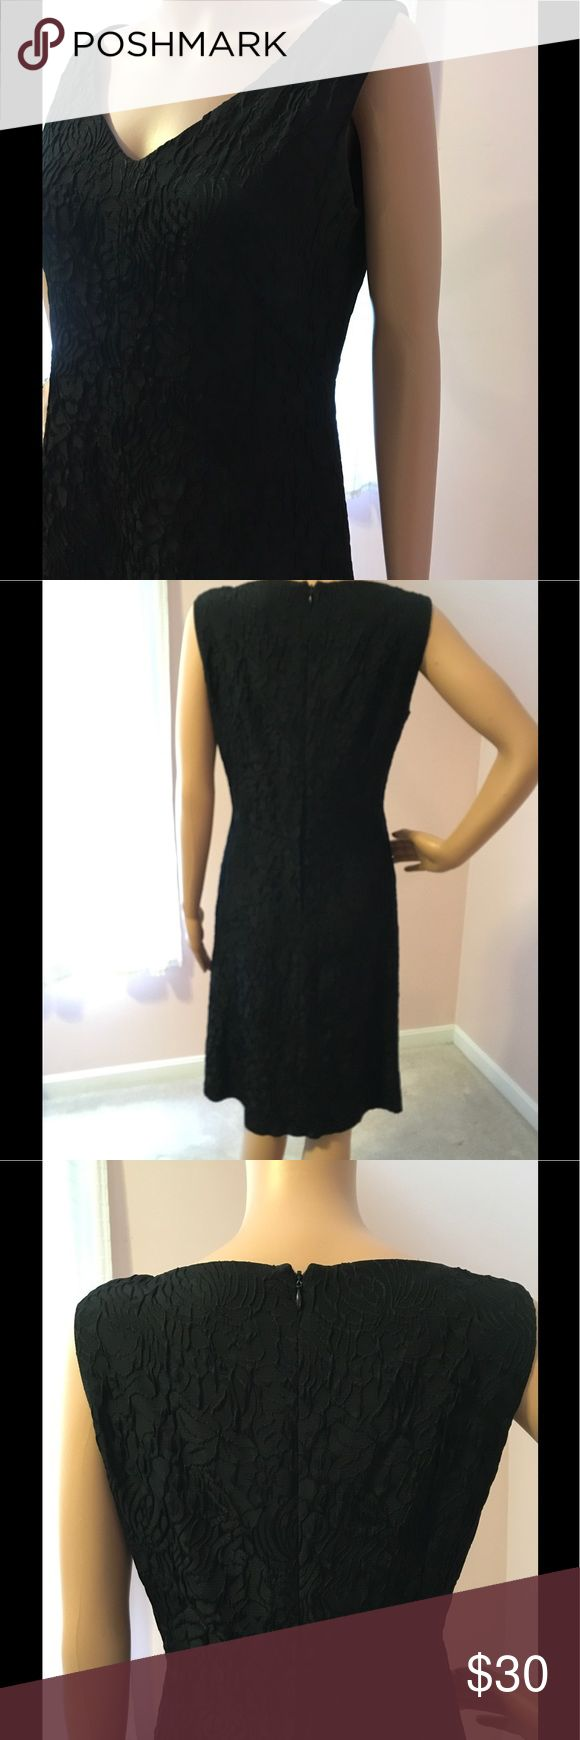 Donna Ricco Dress Black brocade dress with just the right fit. No lumps or bumps show through.  Timeless look. Donna Ricco Dresses